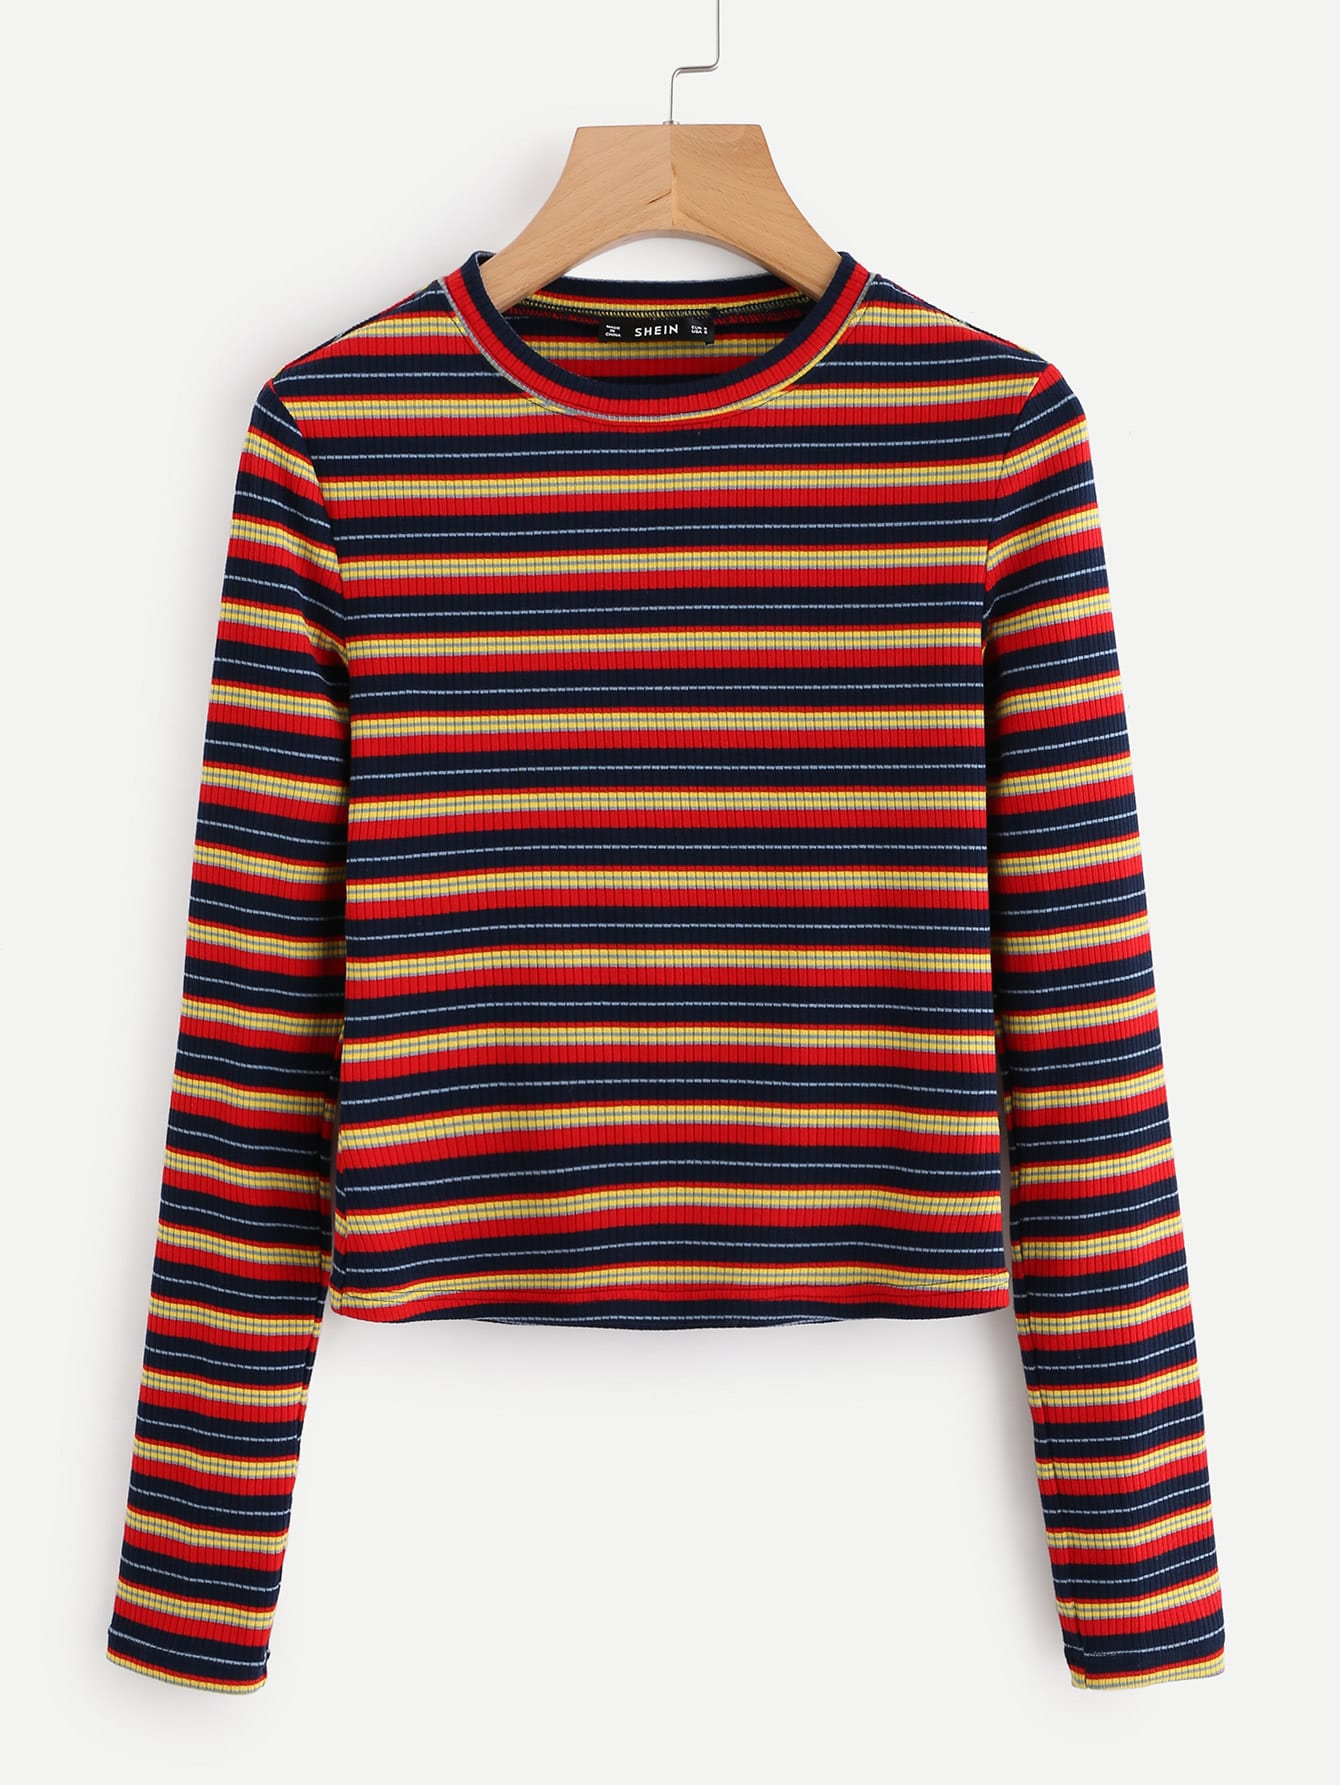 Colorful striped ribbed tee shein sheinside